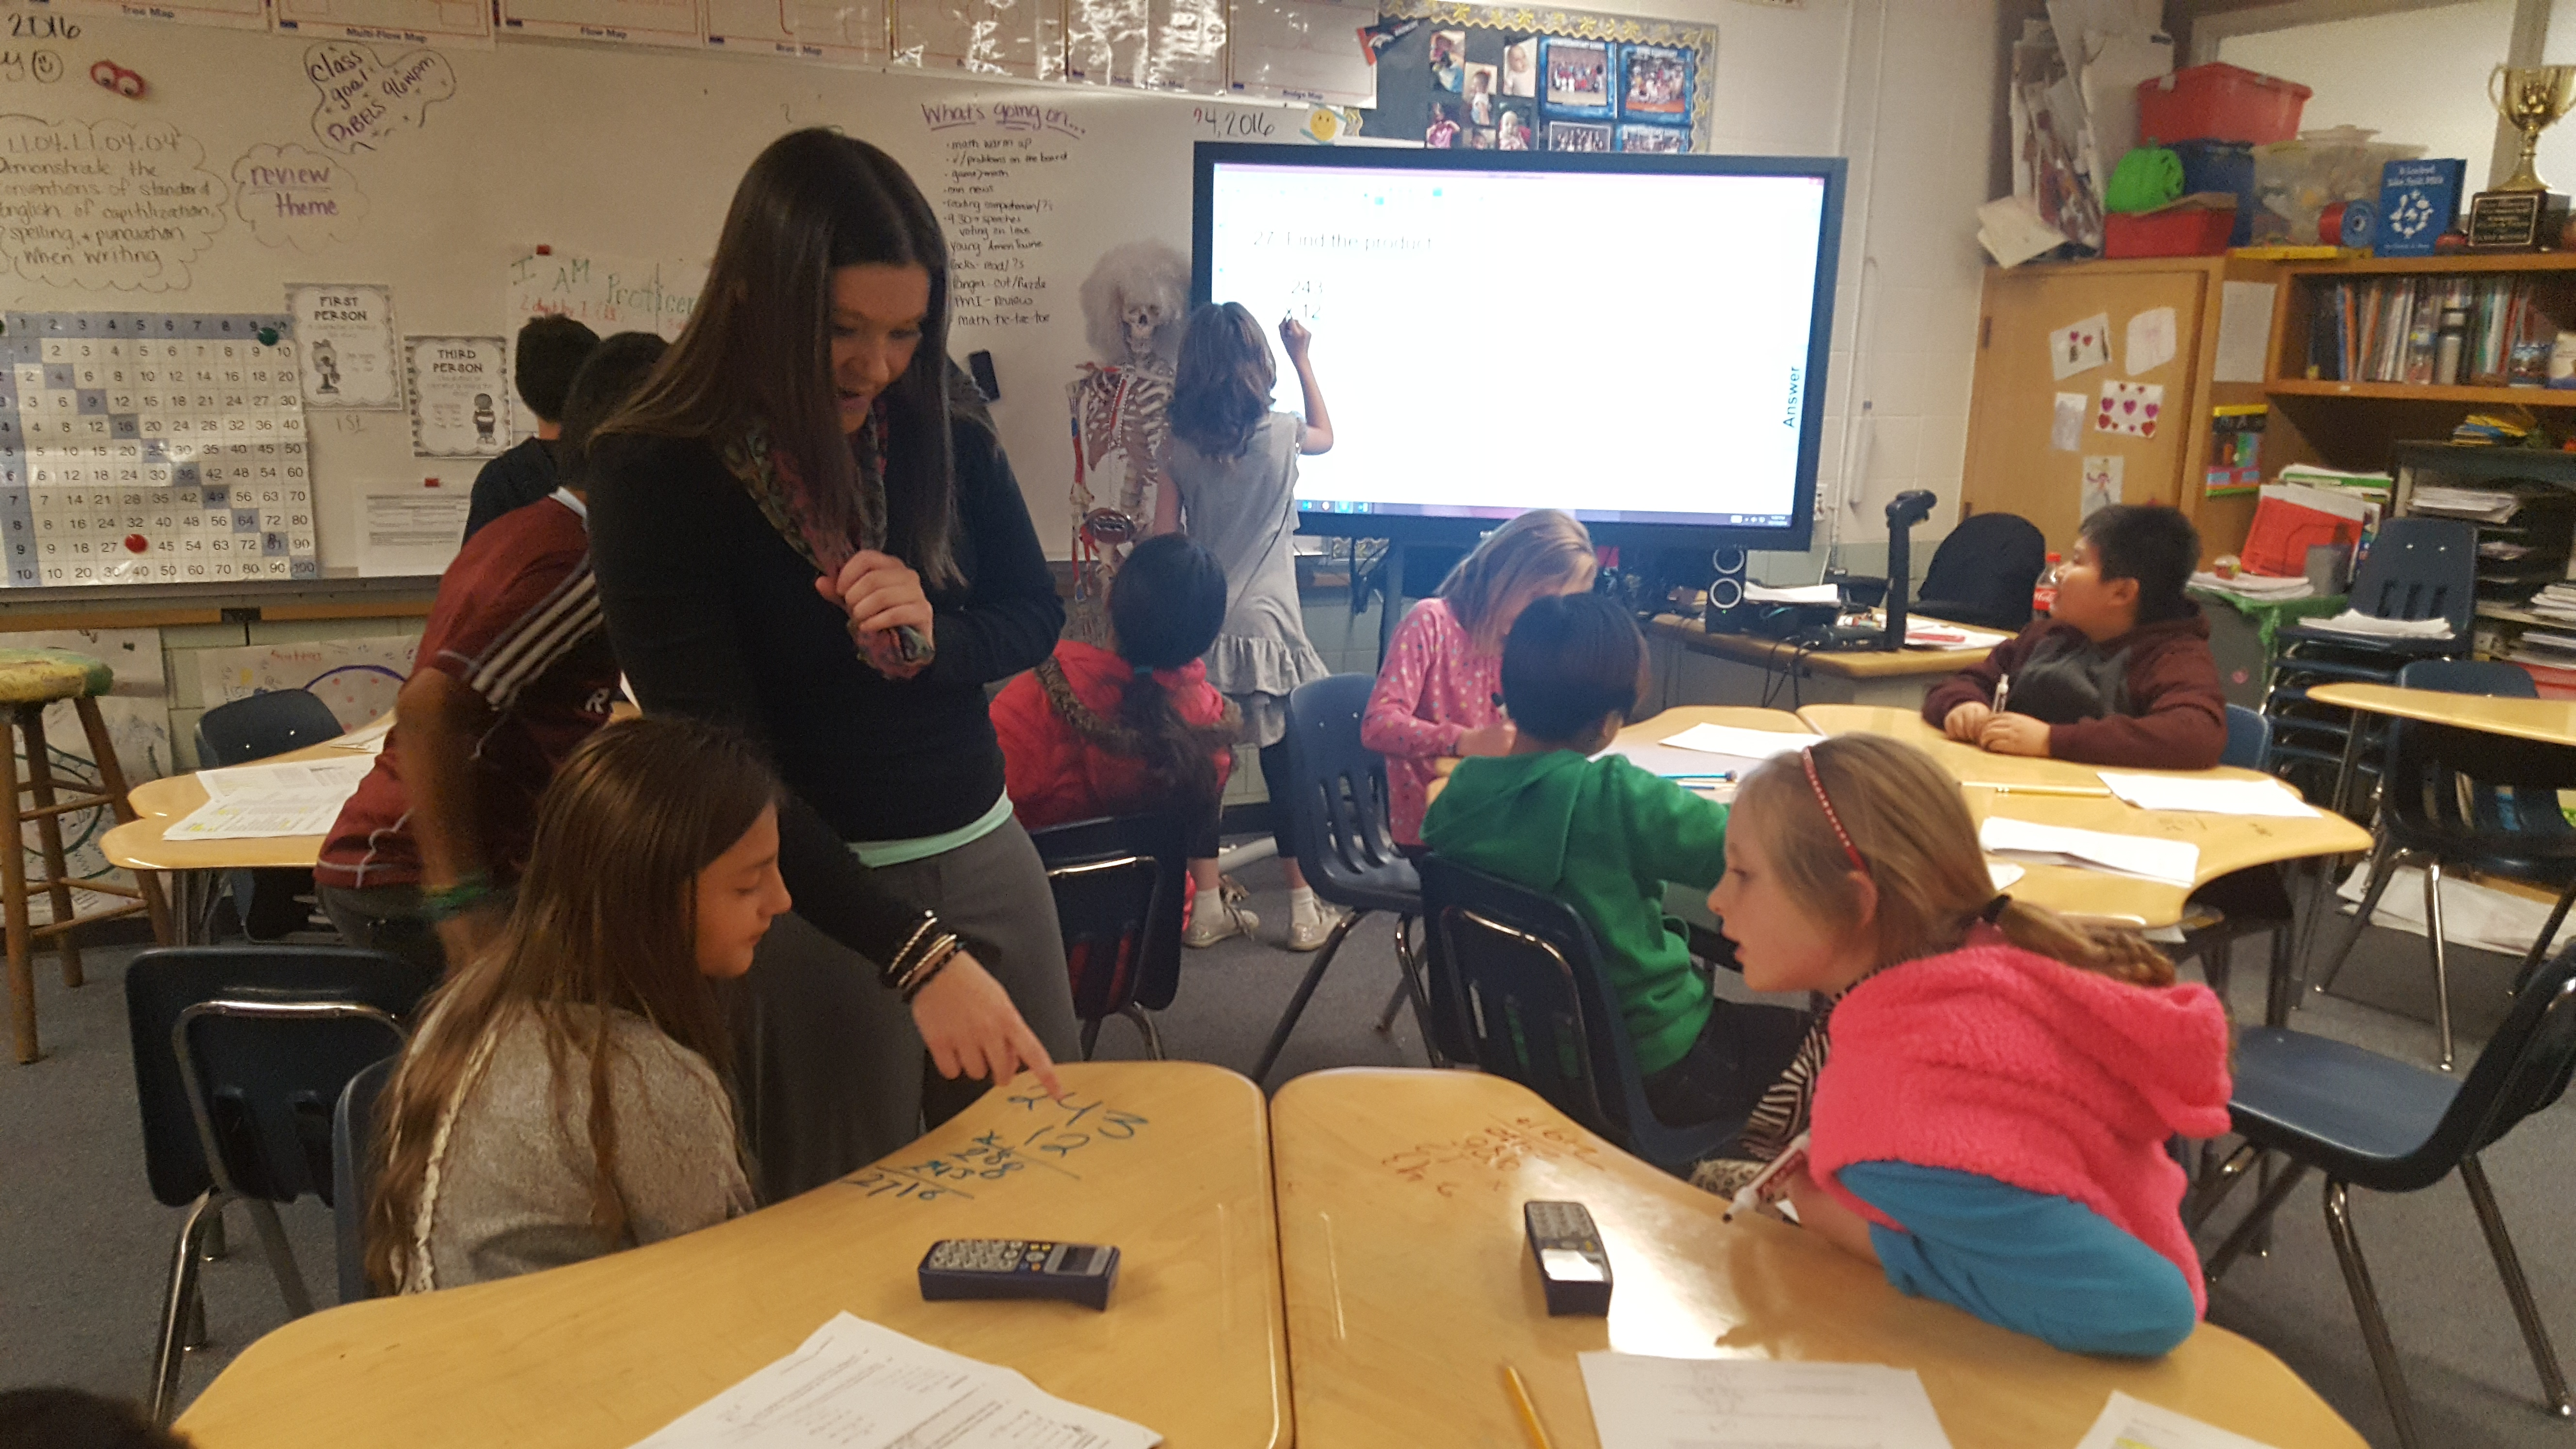 Teacher Amy Adams walks around her classroom checking on students working independently on math at Flynn Elementary School in Westminster. (Photo by Yesenia Robles, Chalkbeat)